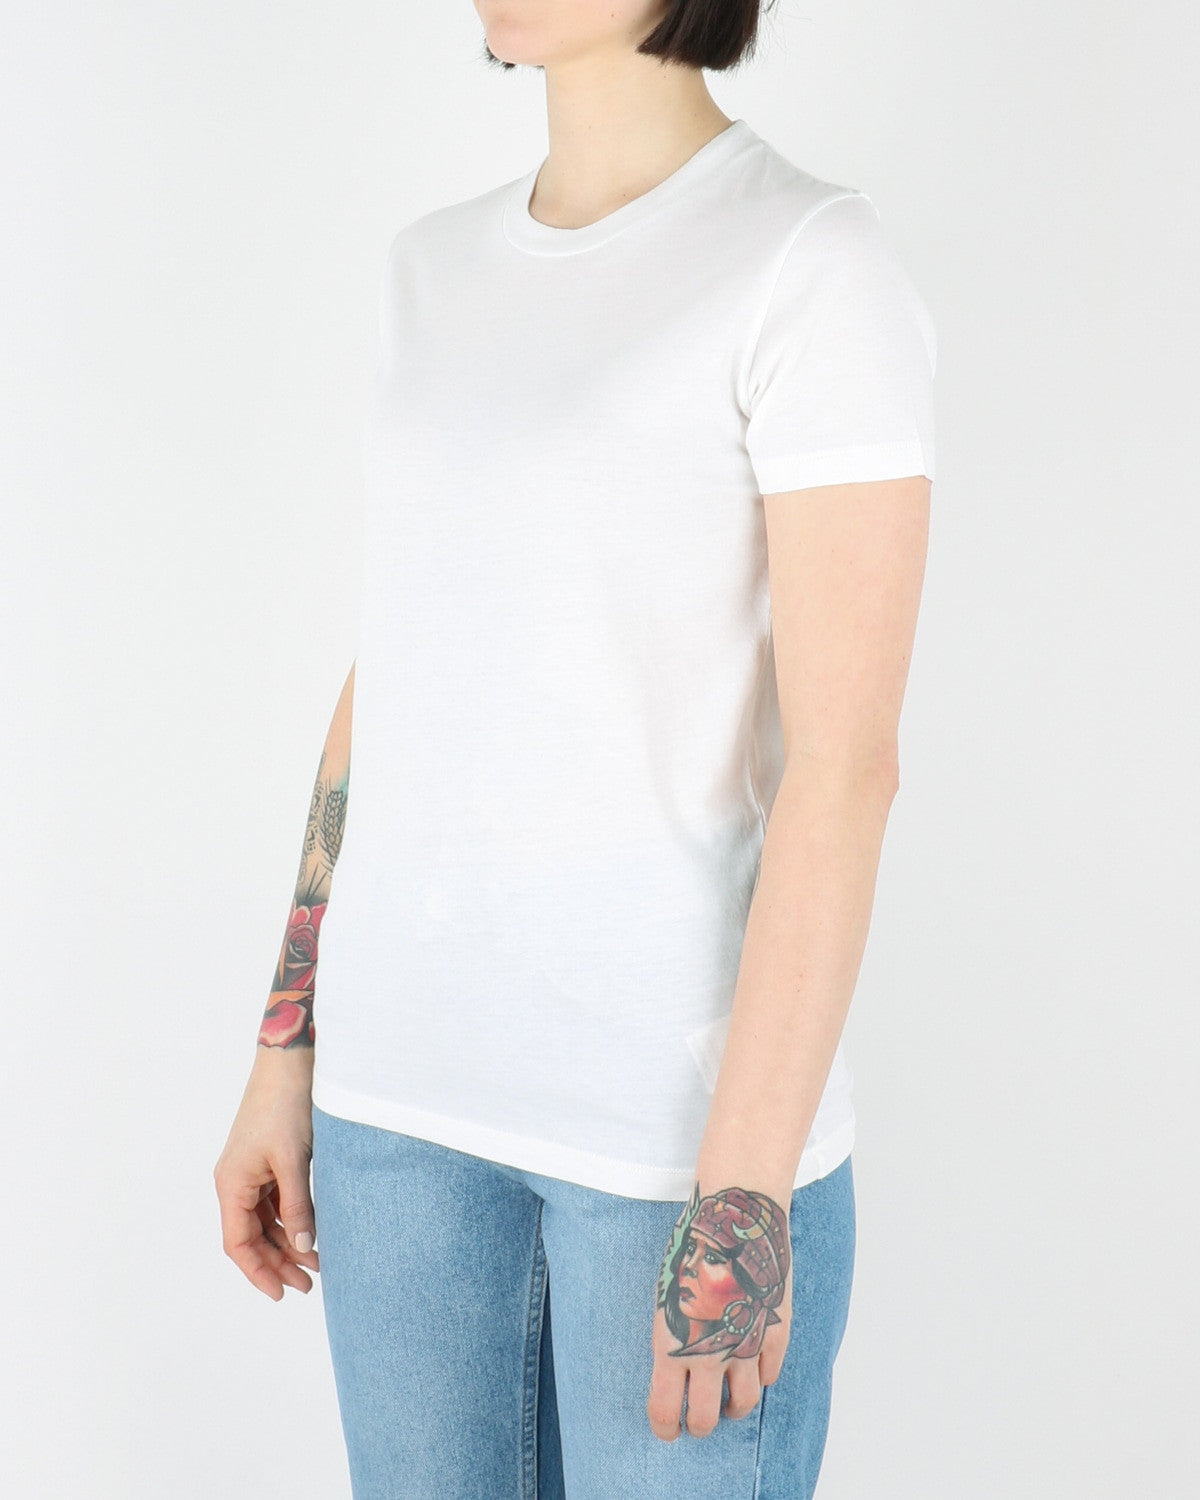 wood wood_eden t-shirt_white_view_2_2